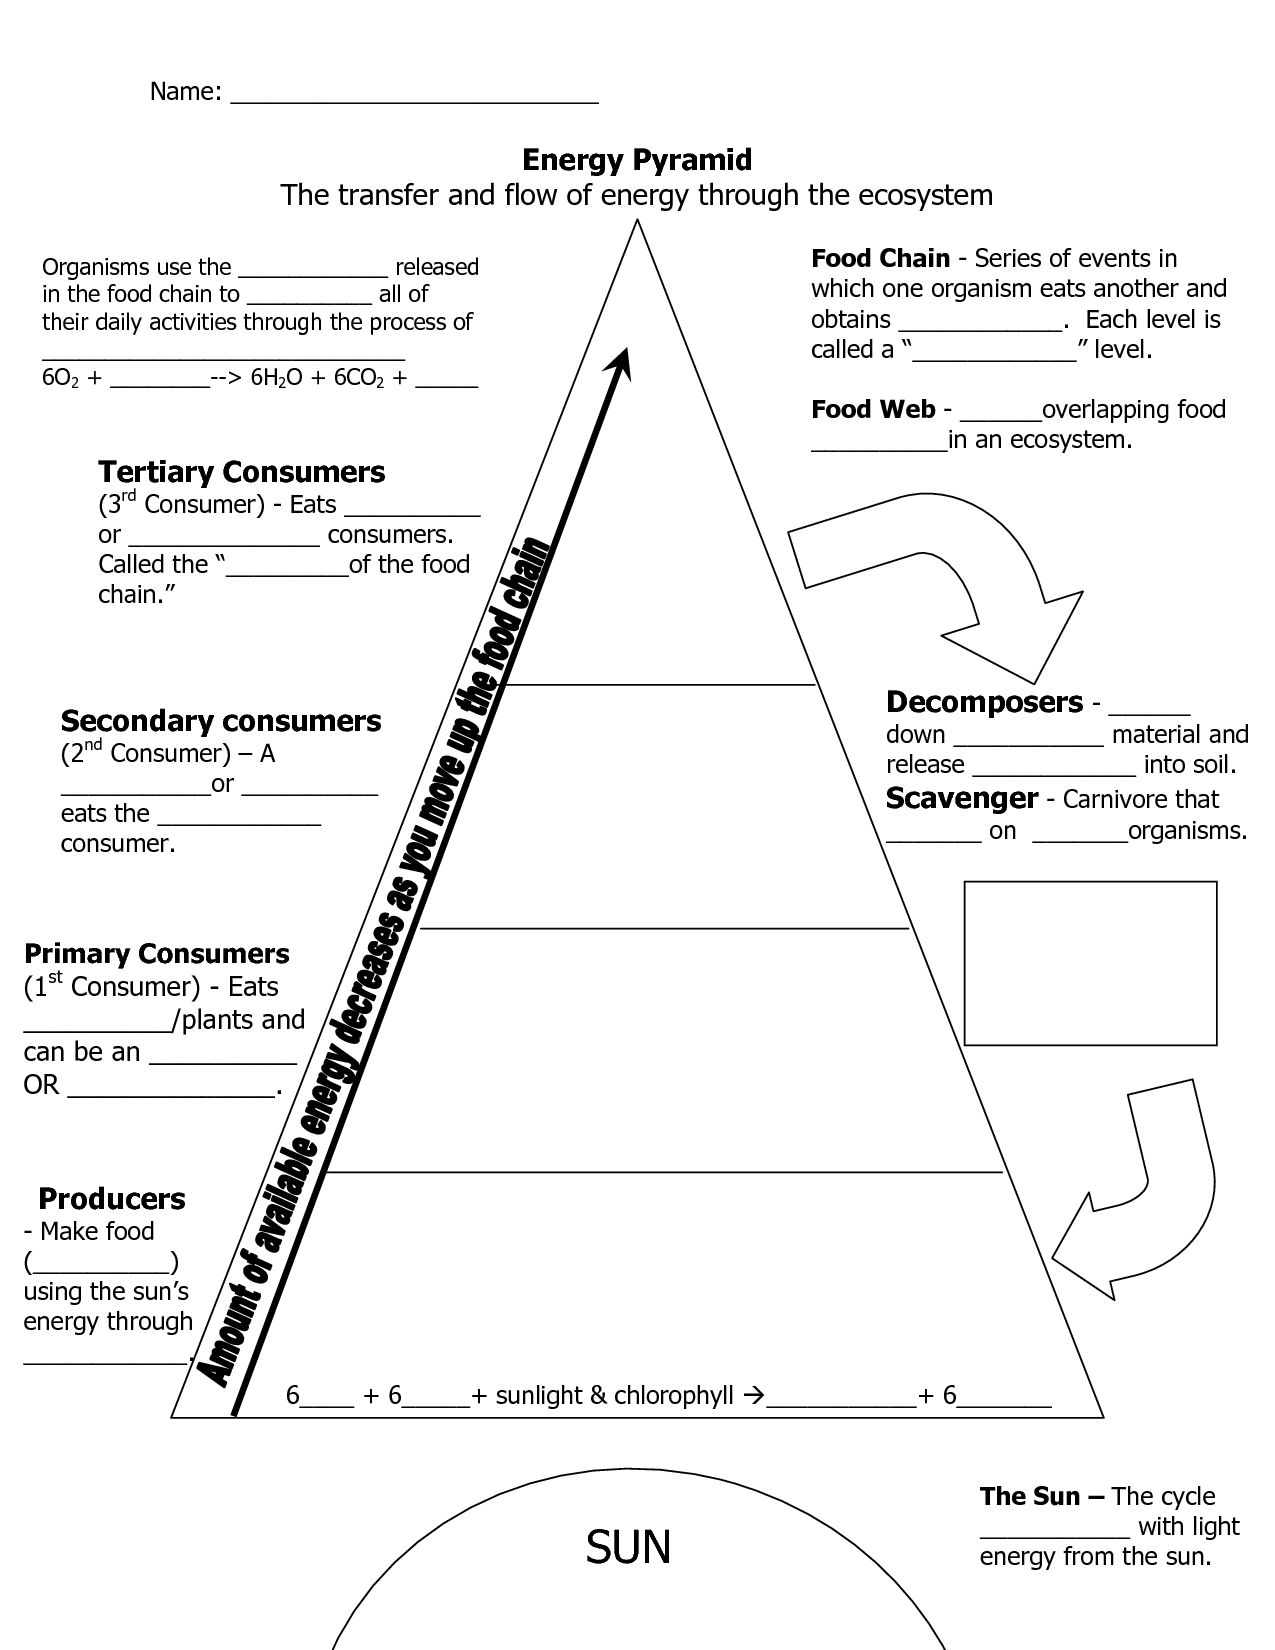 Ecological Pyramid Worksheet Energy Pyramid Worksheets Middle School Teaching Biology Biology Worksheet Biology Lessons